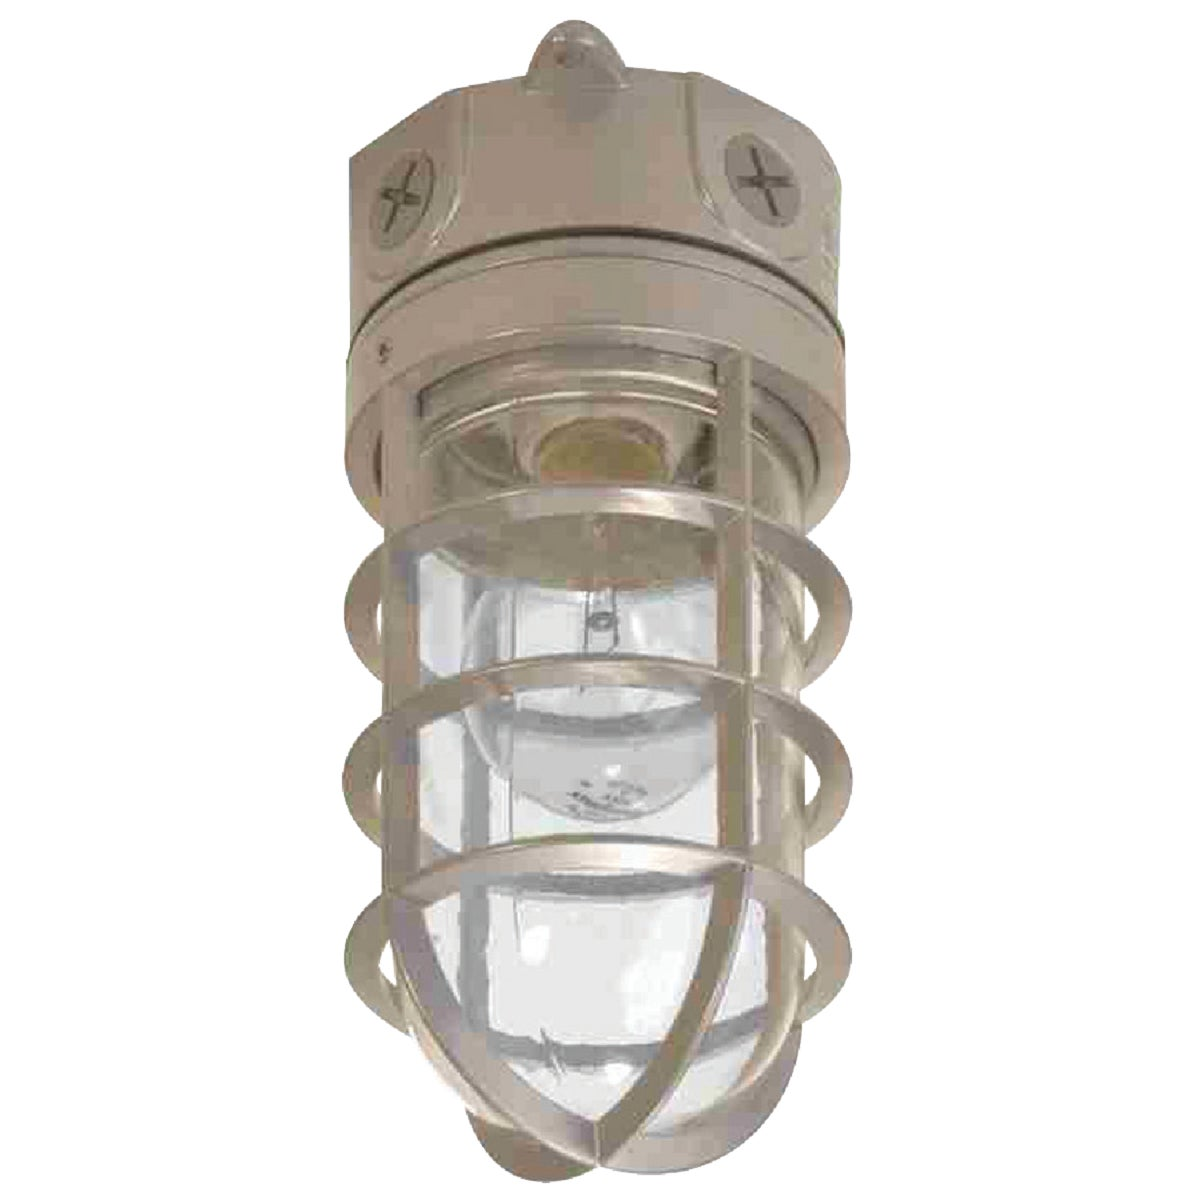 100W VAPOR TIGHT LIGHT - VT100G by Cooper Lighting